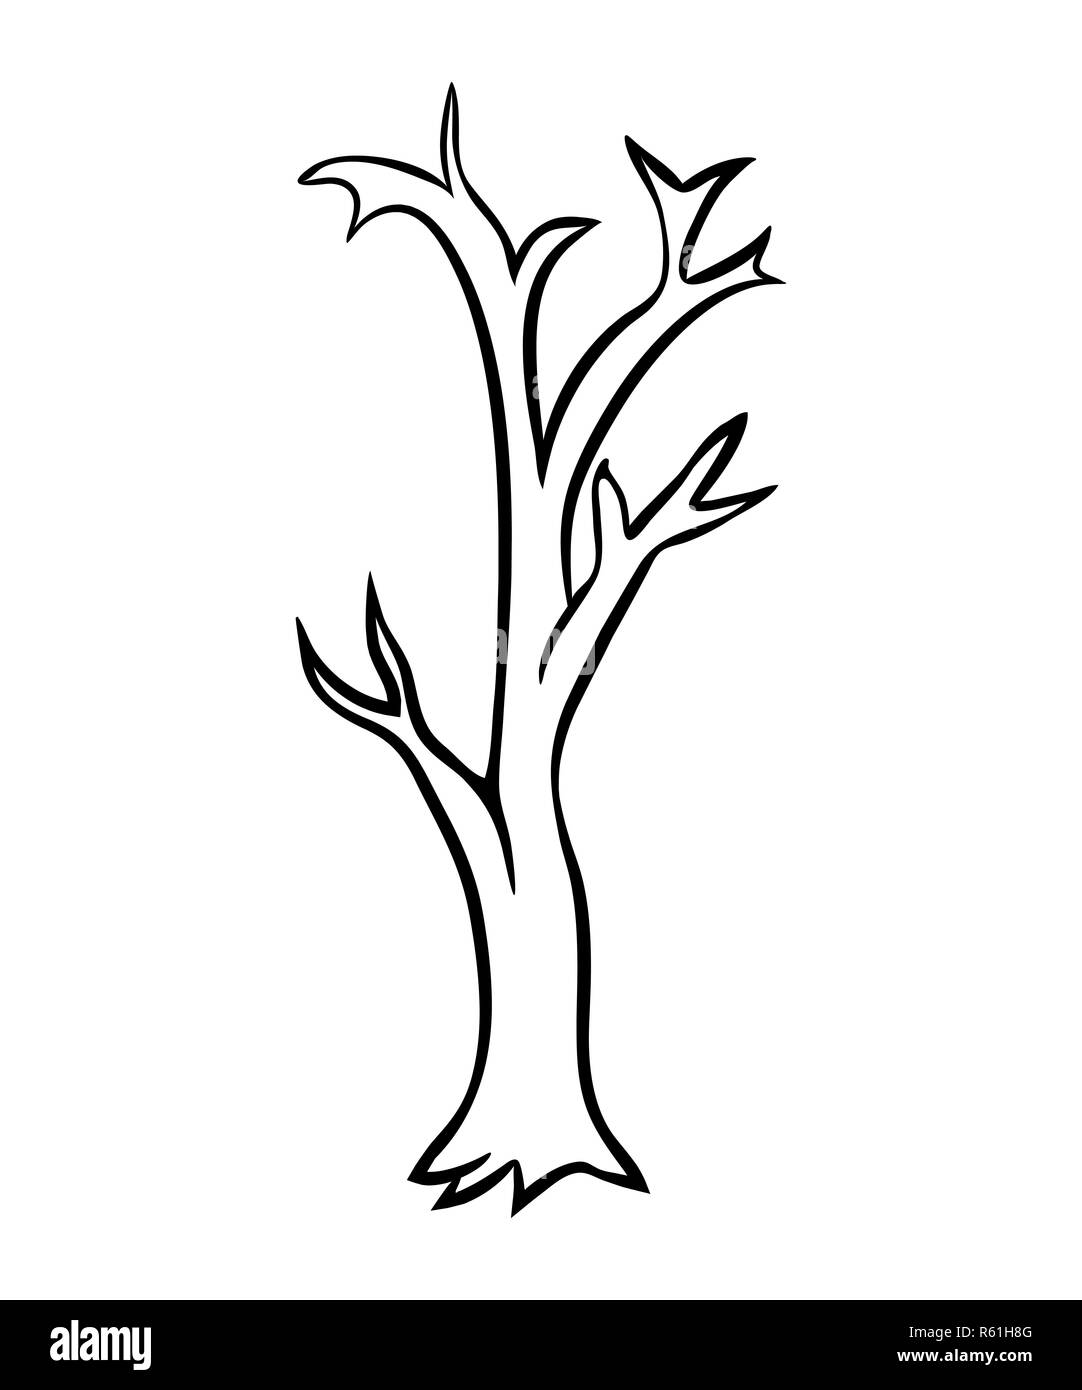 Bare Tree Clipart High Resolution Stock Photography And Images Alamy